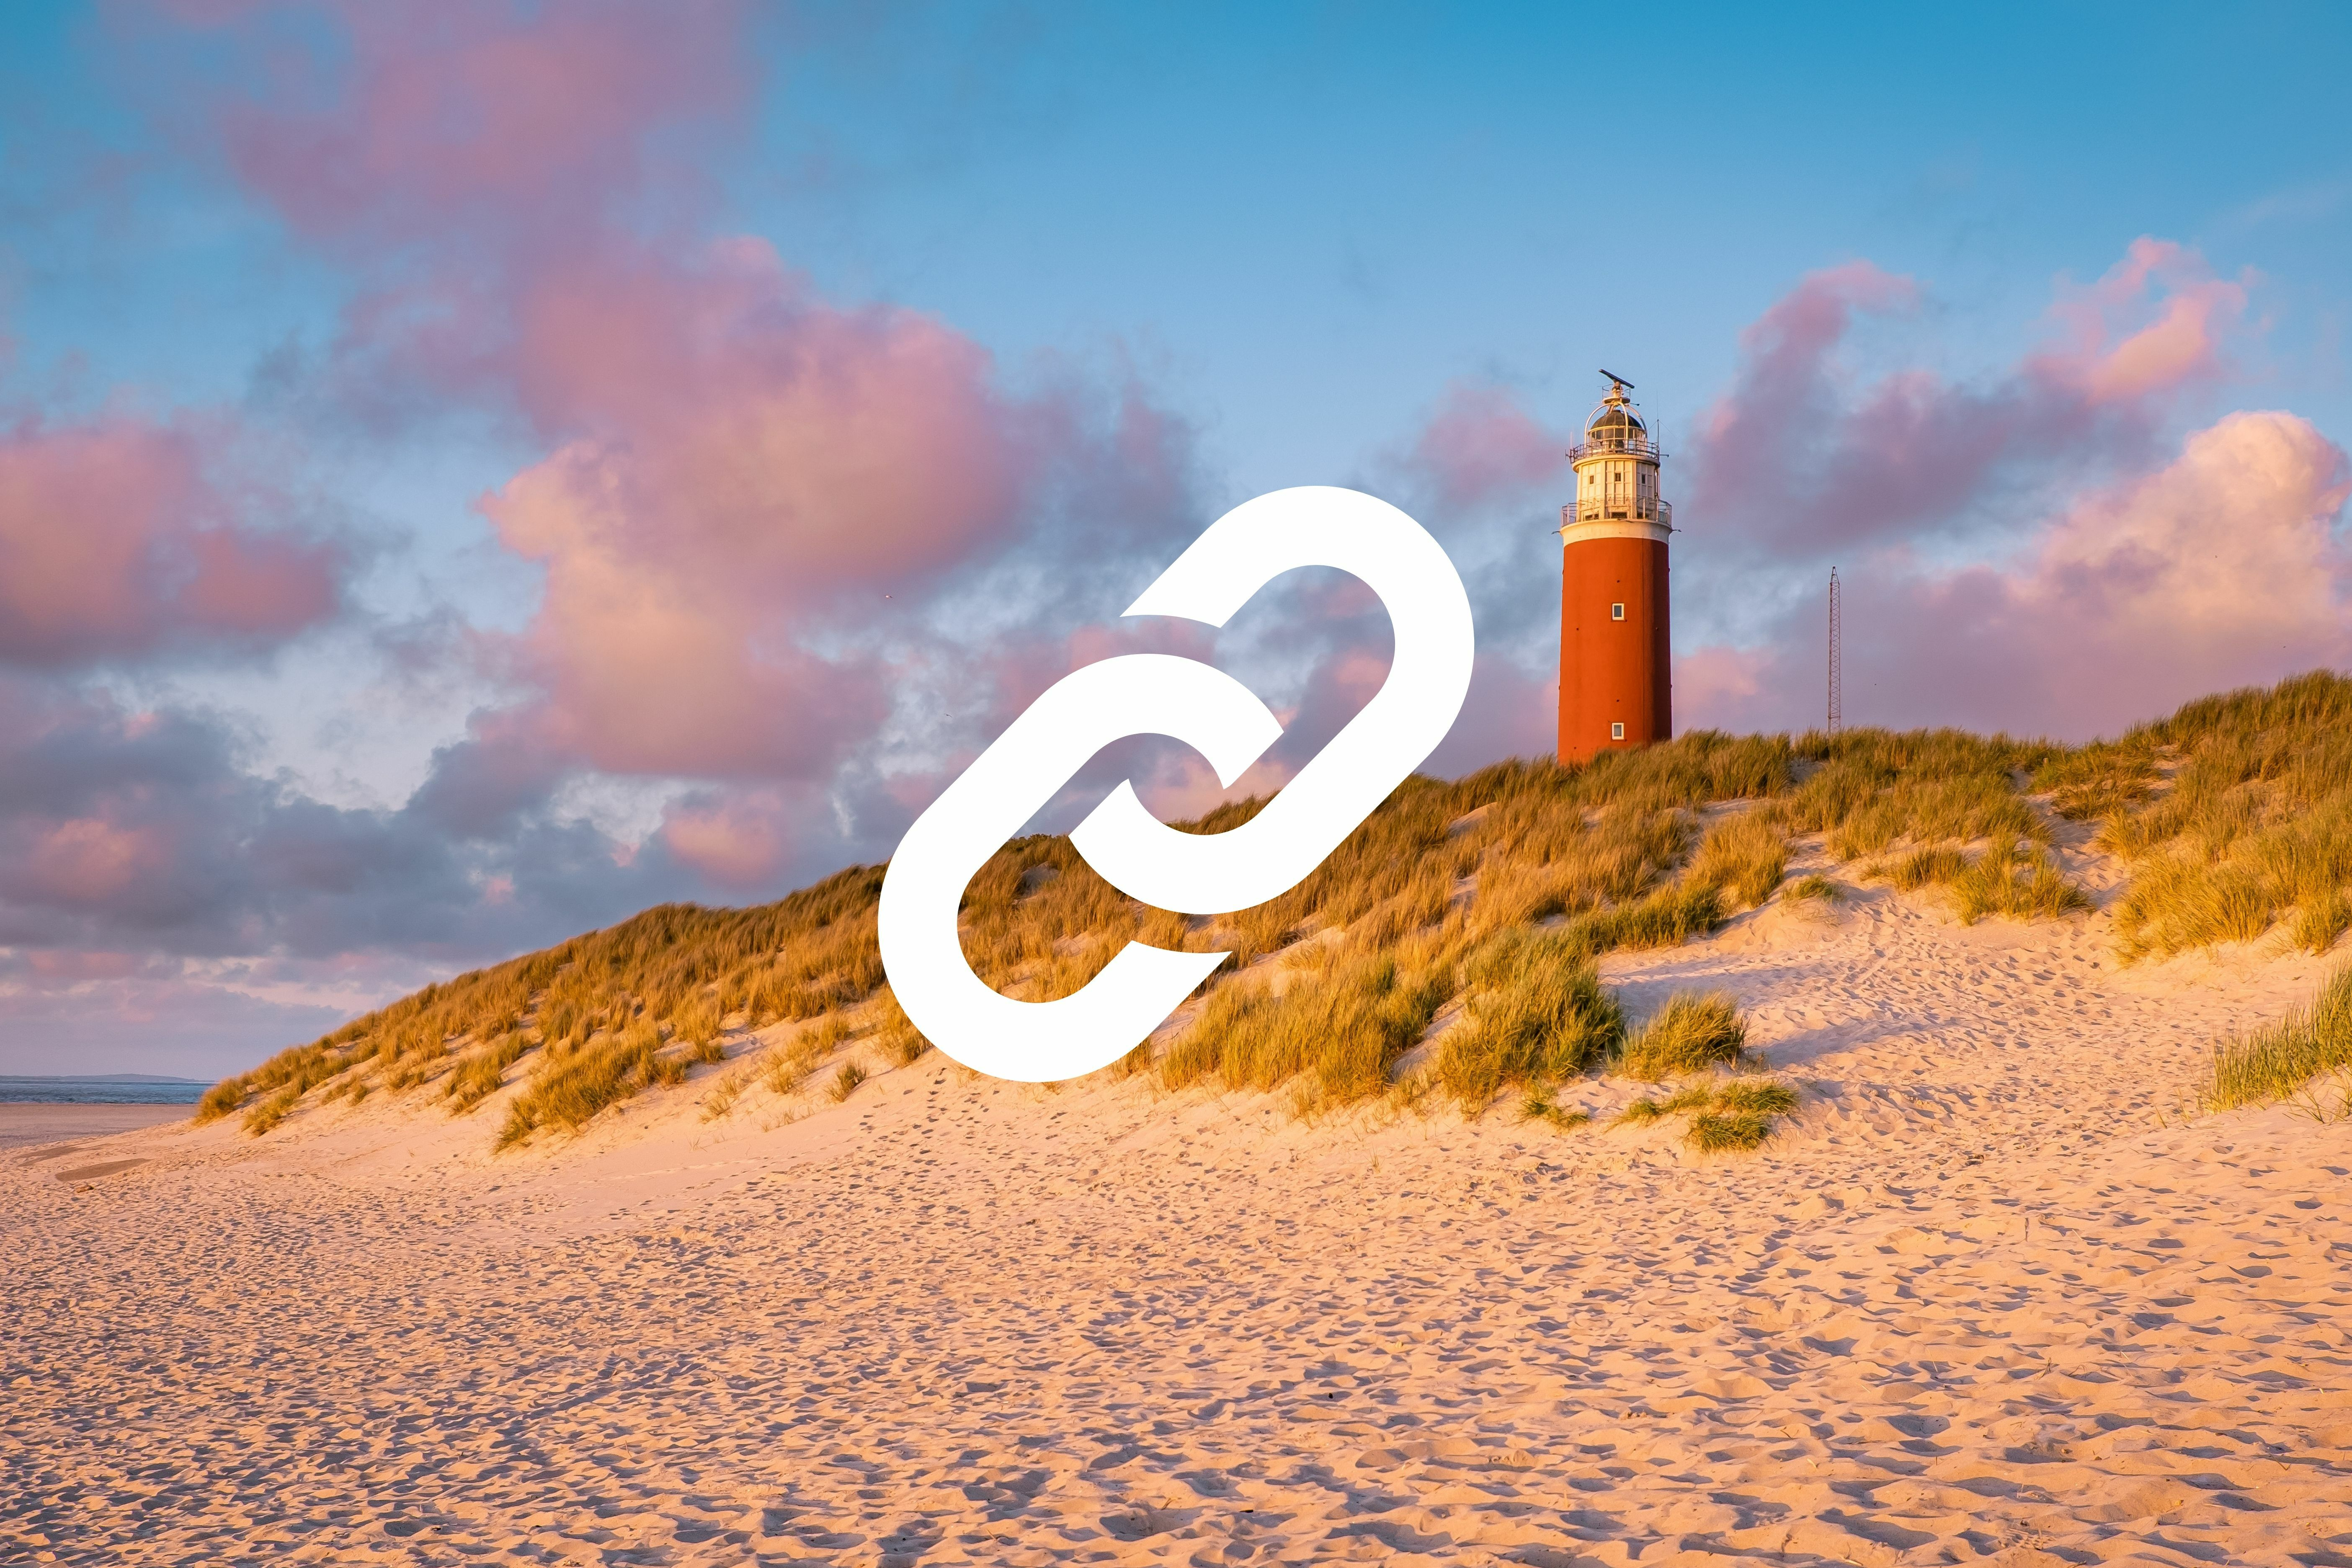 Affiliatepartner VVV Texel